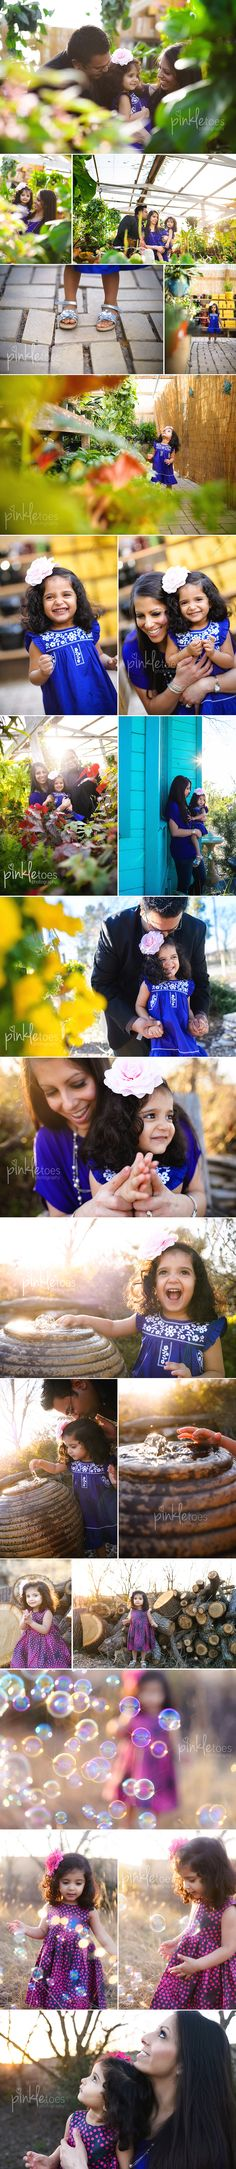 ns-pinkle-toes-austin-family-child-baby-lifestyle-candid-photographer    Love the photo with the bubbles in the forefront